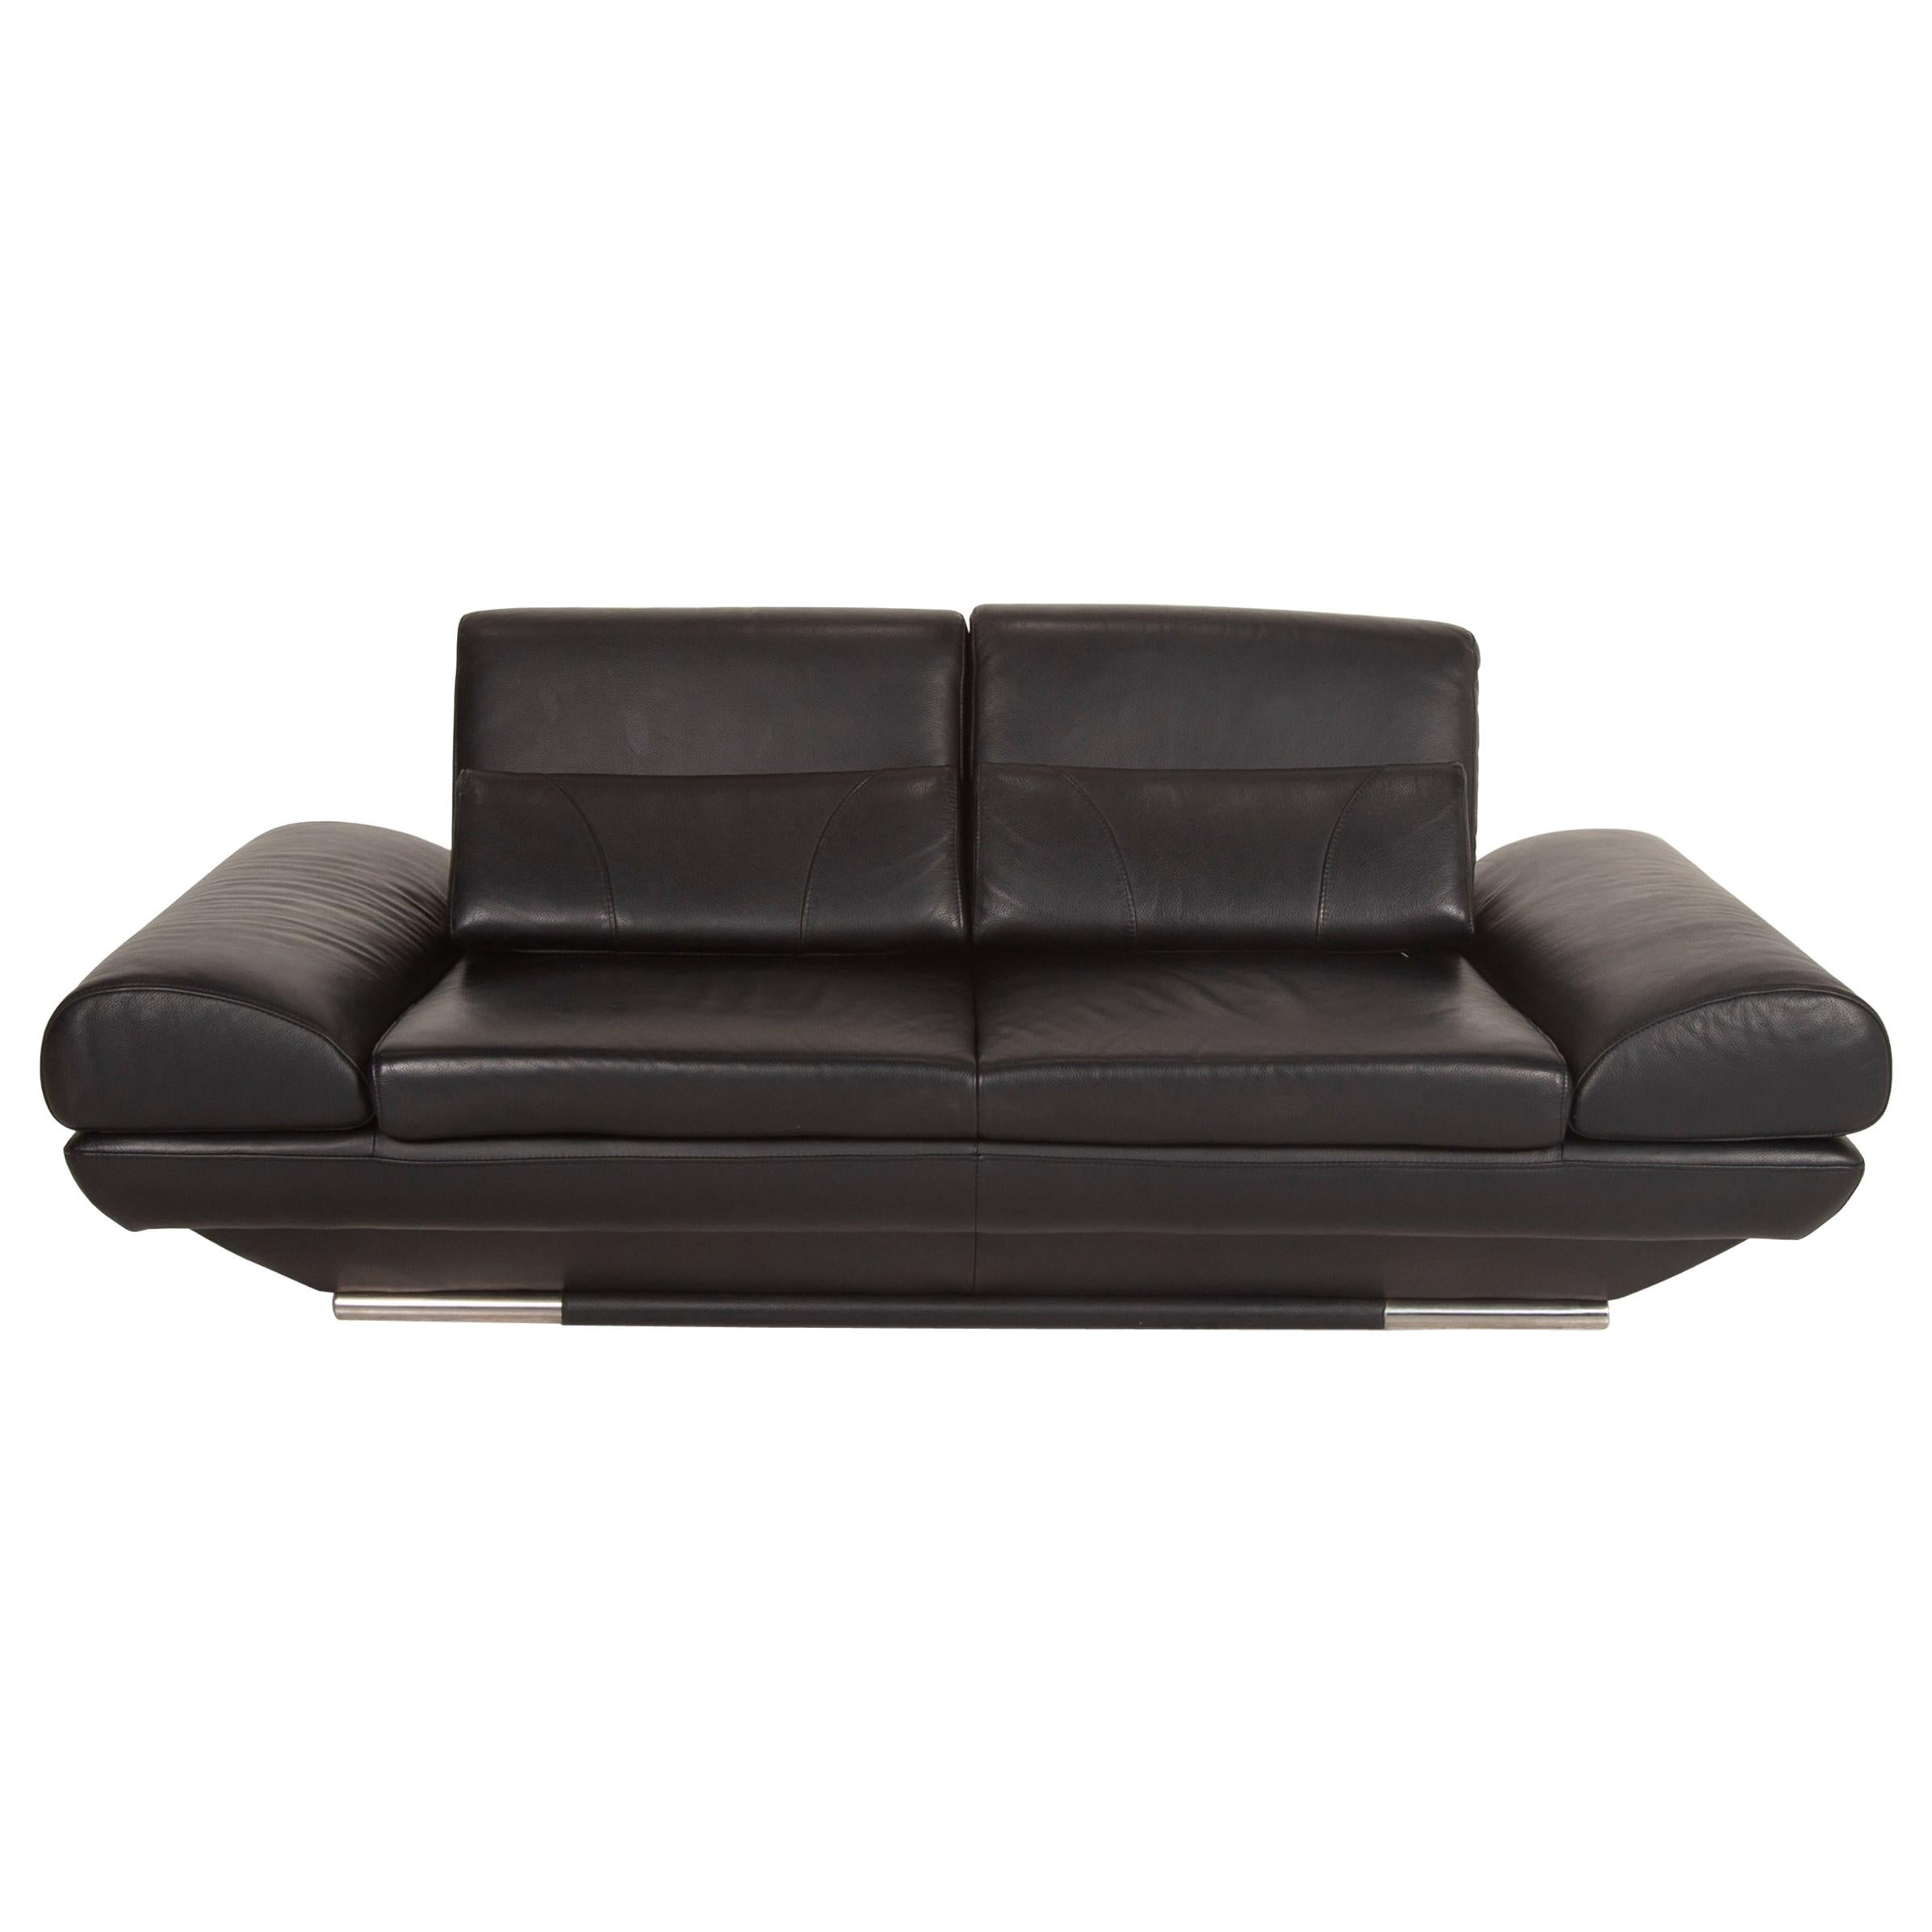 Gio Mano Leather Sofa Black Two-Seater Function